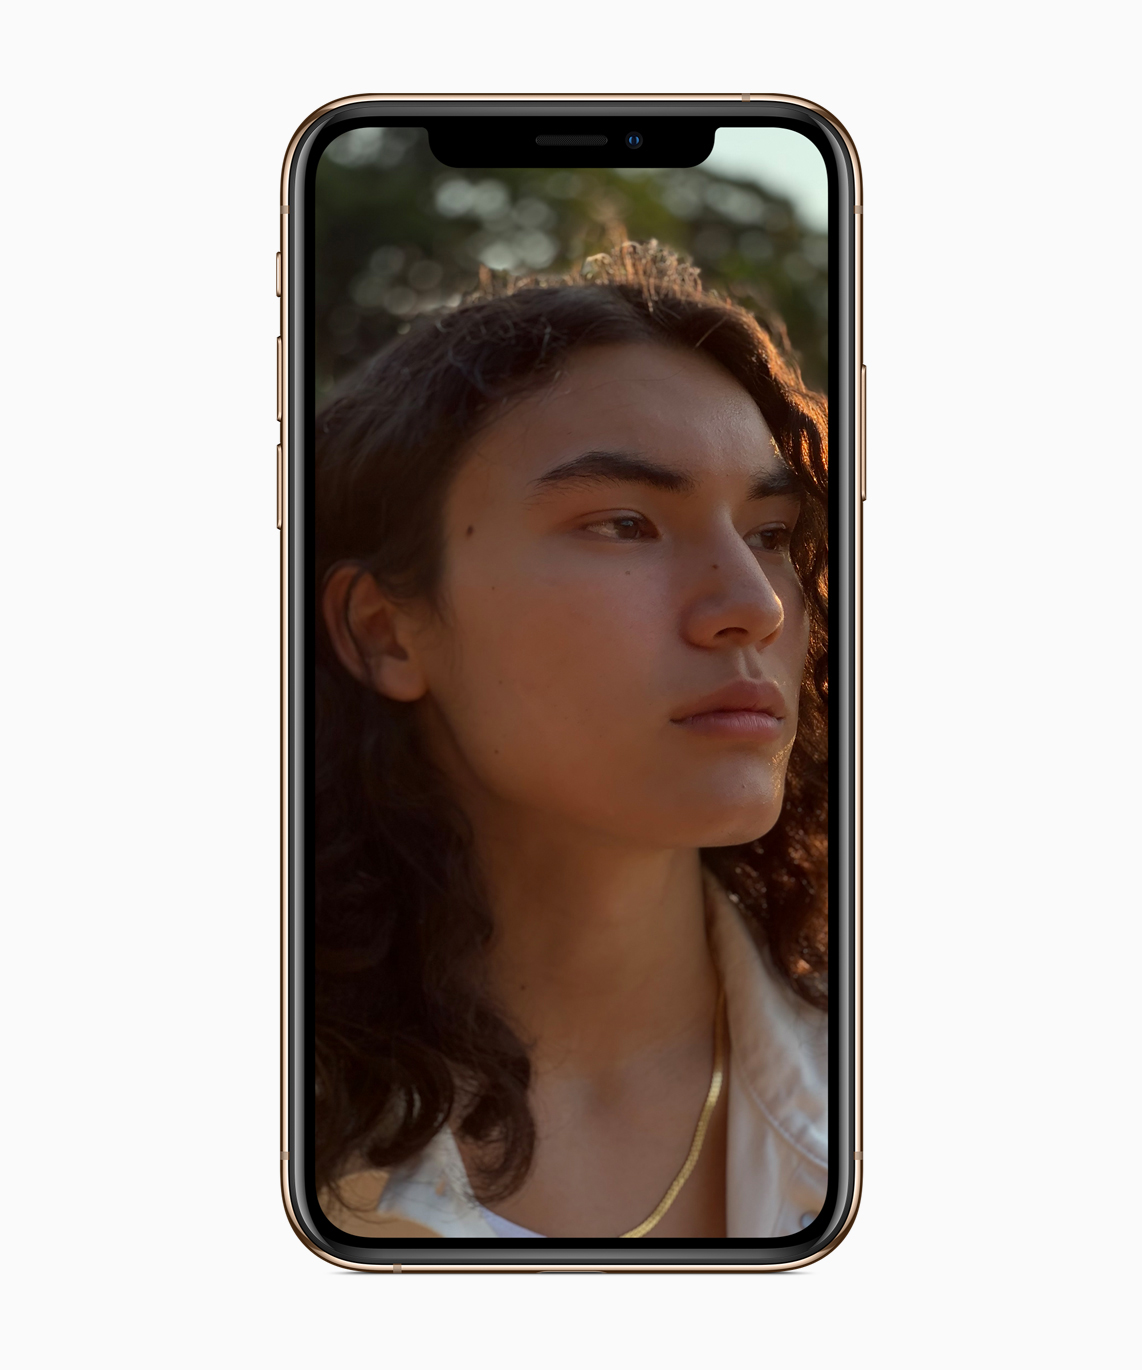 iPhone Xs - Selfie